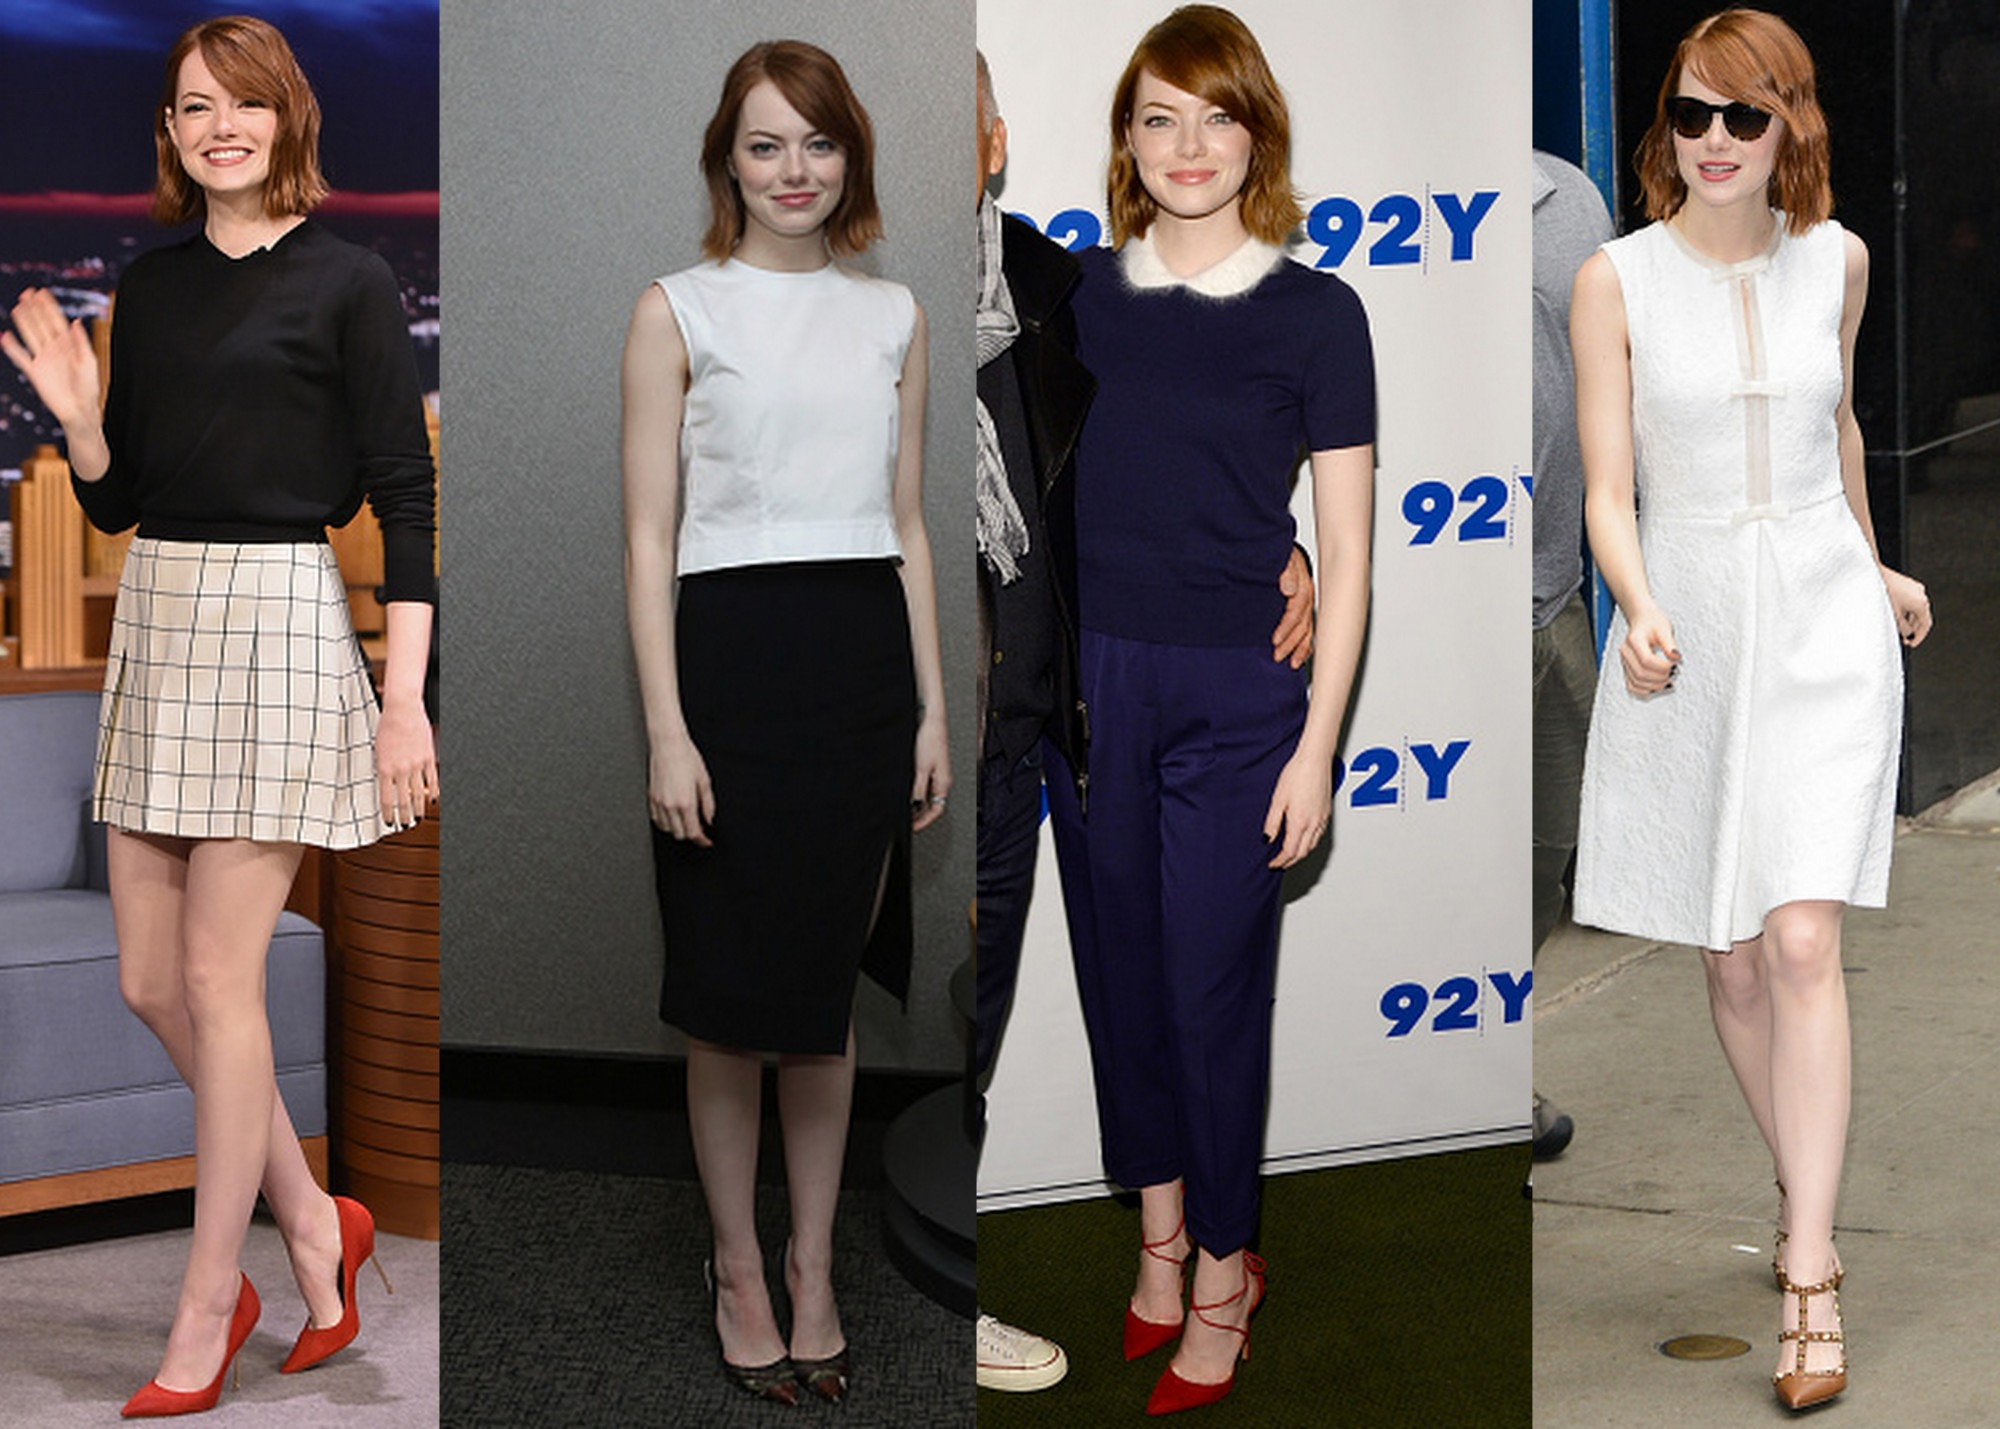 2000x1429xEmma-Stone-in-Michael-Kors-Proenza-Schouler-Giambattista-Valli-New-York-Promo-Tour-e1413557997571.jpg.pagespeed.ic_.91ueS2Z7R9